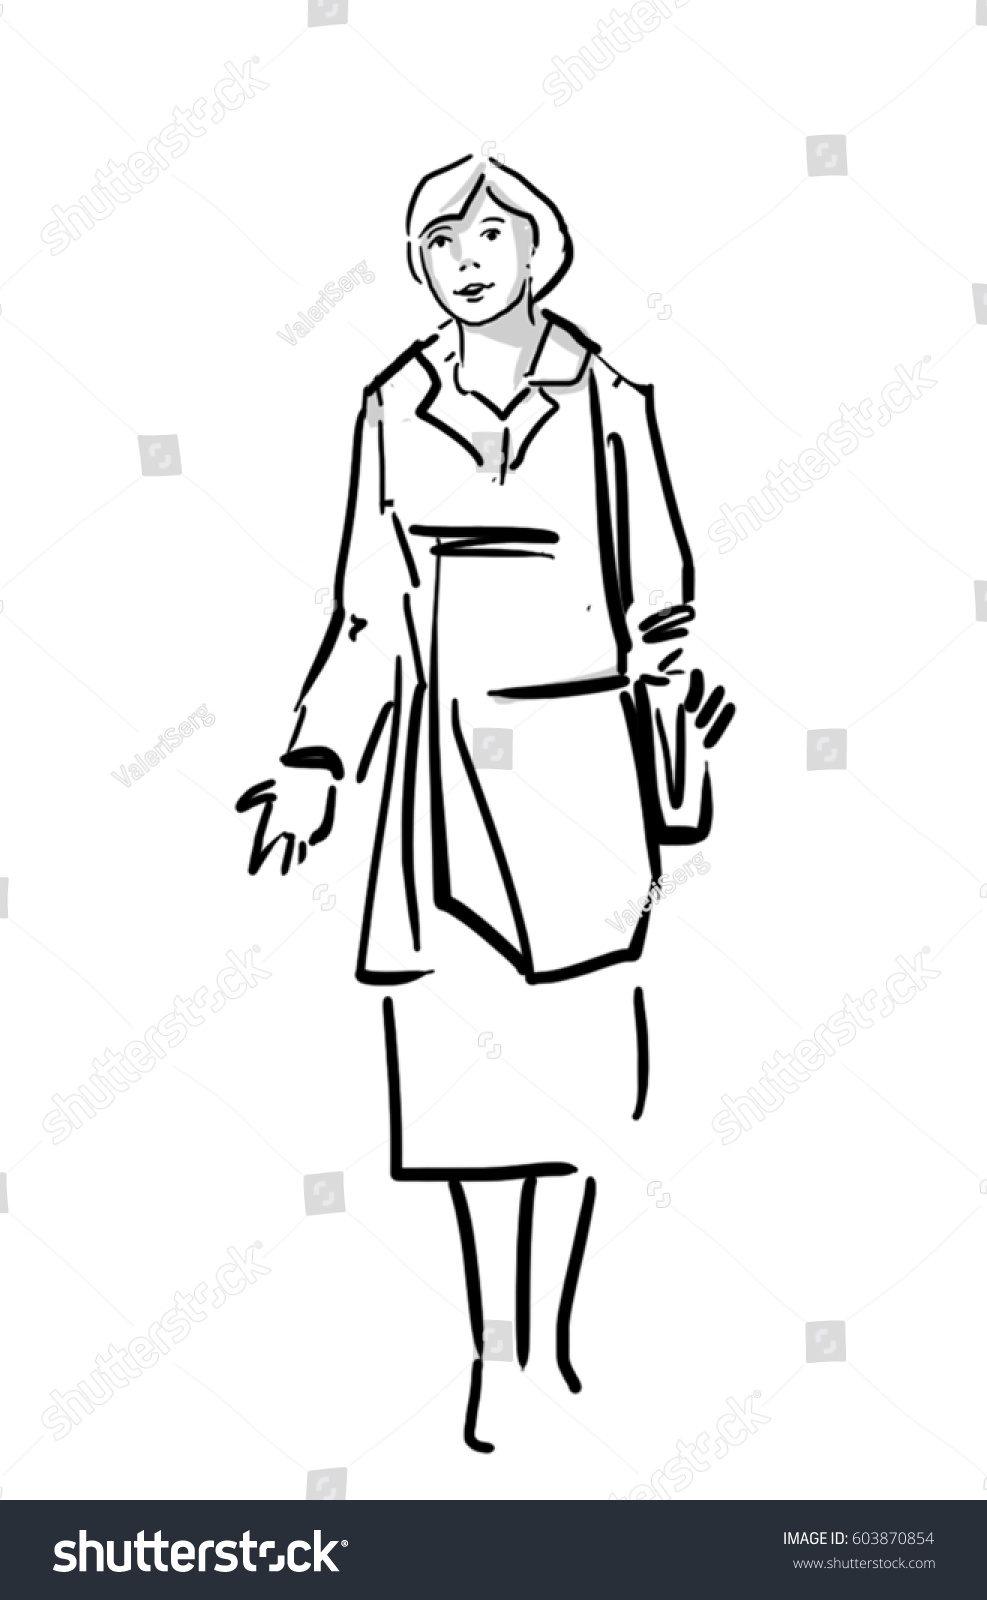 Isolated woman standing full body middle age woman dressed in a coat and skirt